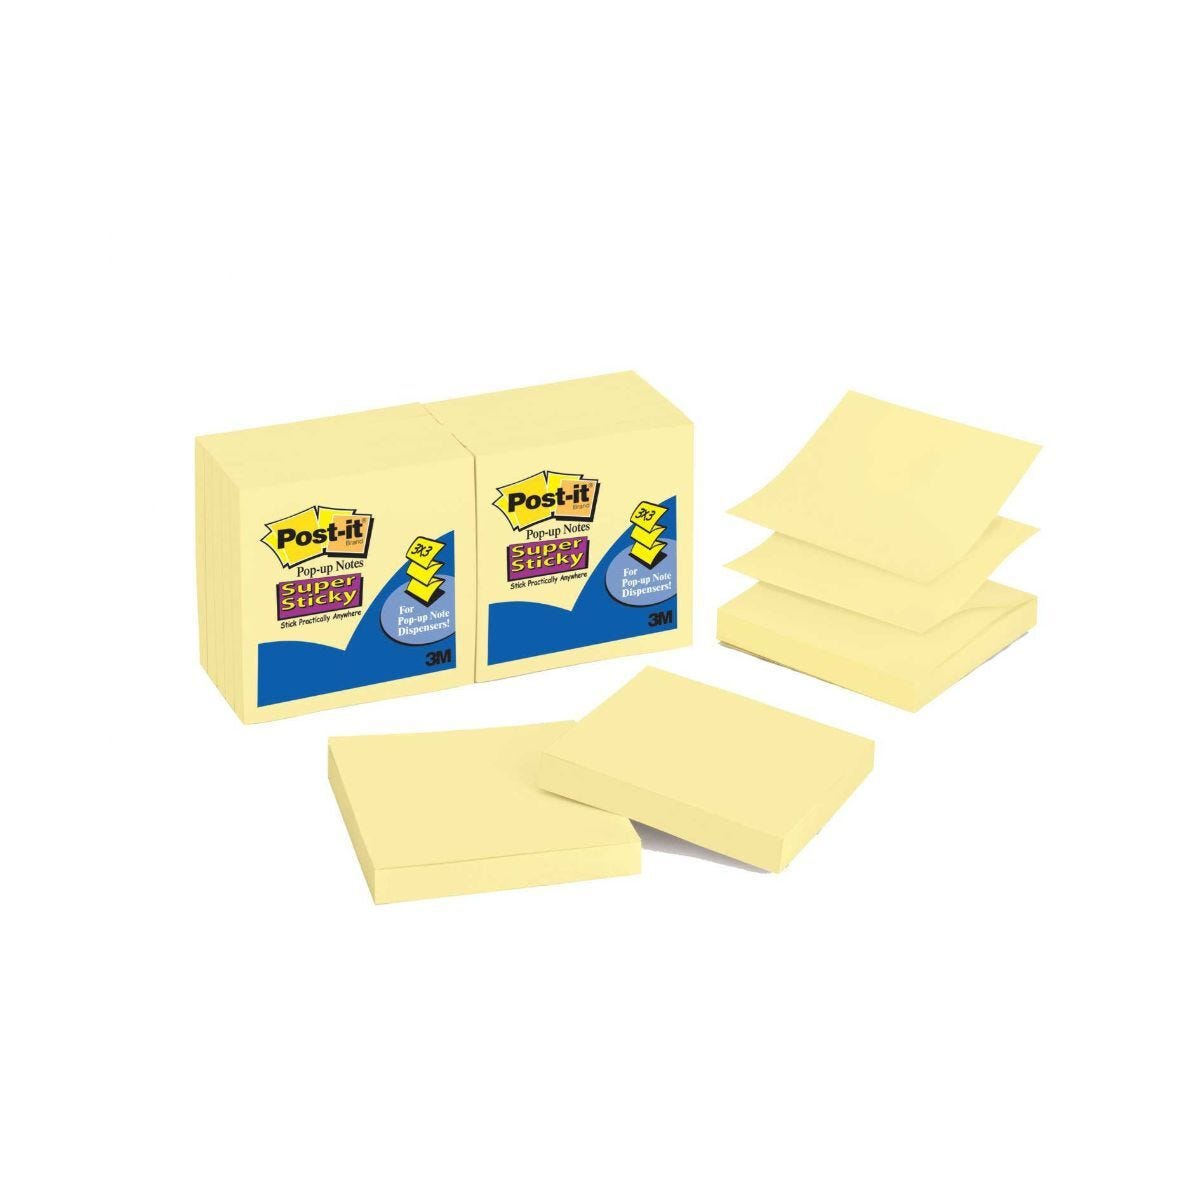 Post-It 2-Note Refill Pack, 1 Pack of 12 Pads 76 x  76mm